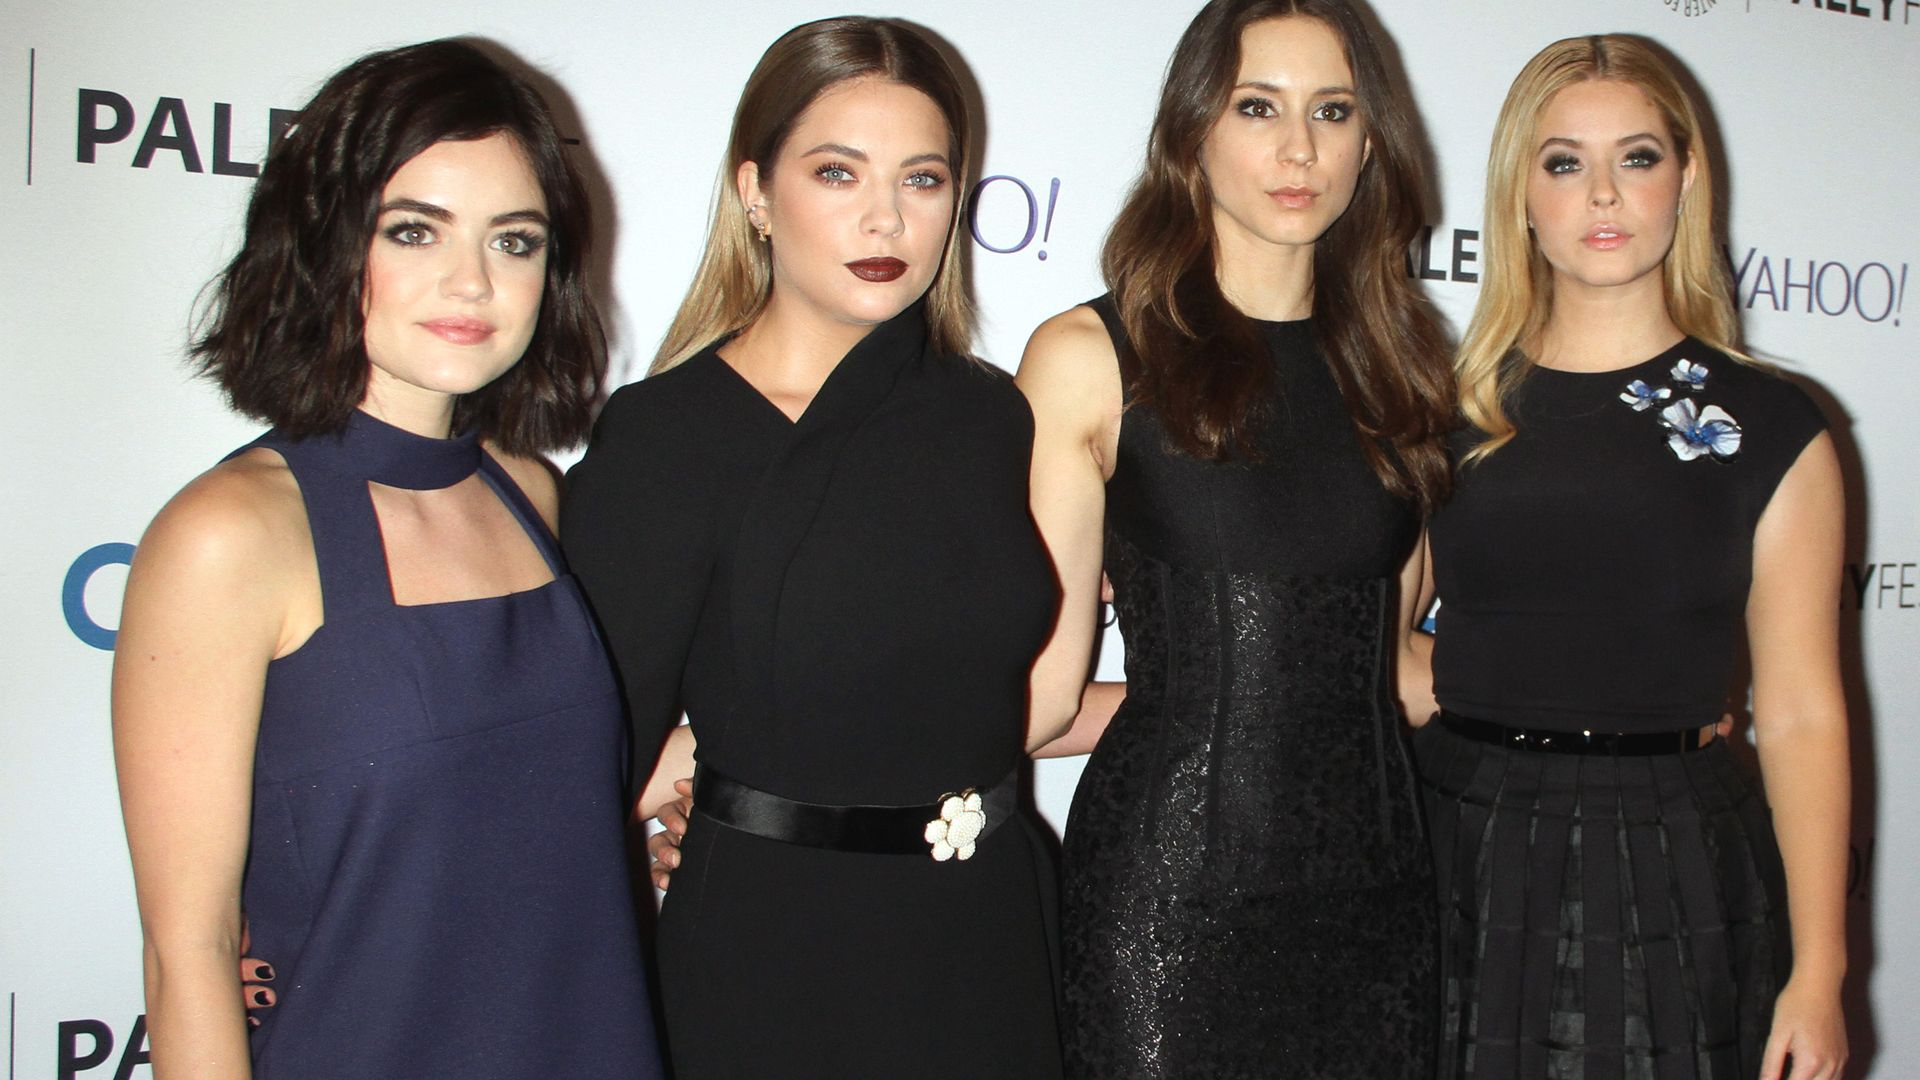 pretty little liars cast dating Troian bellisario and patrick j adams are recently engaged, according to reports the pretty little liars actress, 28, and the suits star, 32, began dating after costarring in the play equivocation in 2009 this will be the first marriage for both actors, whose reps did not return e news' request.